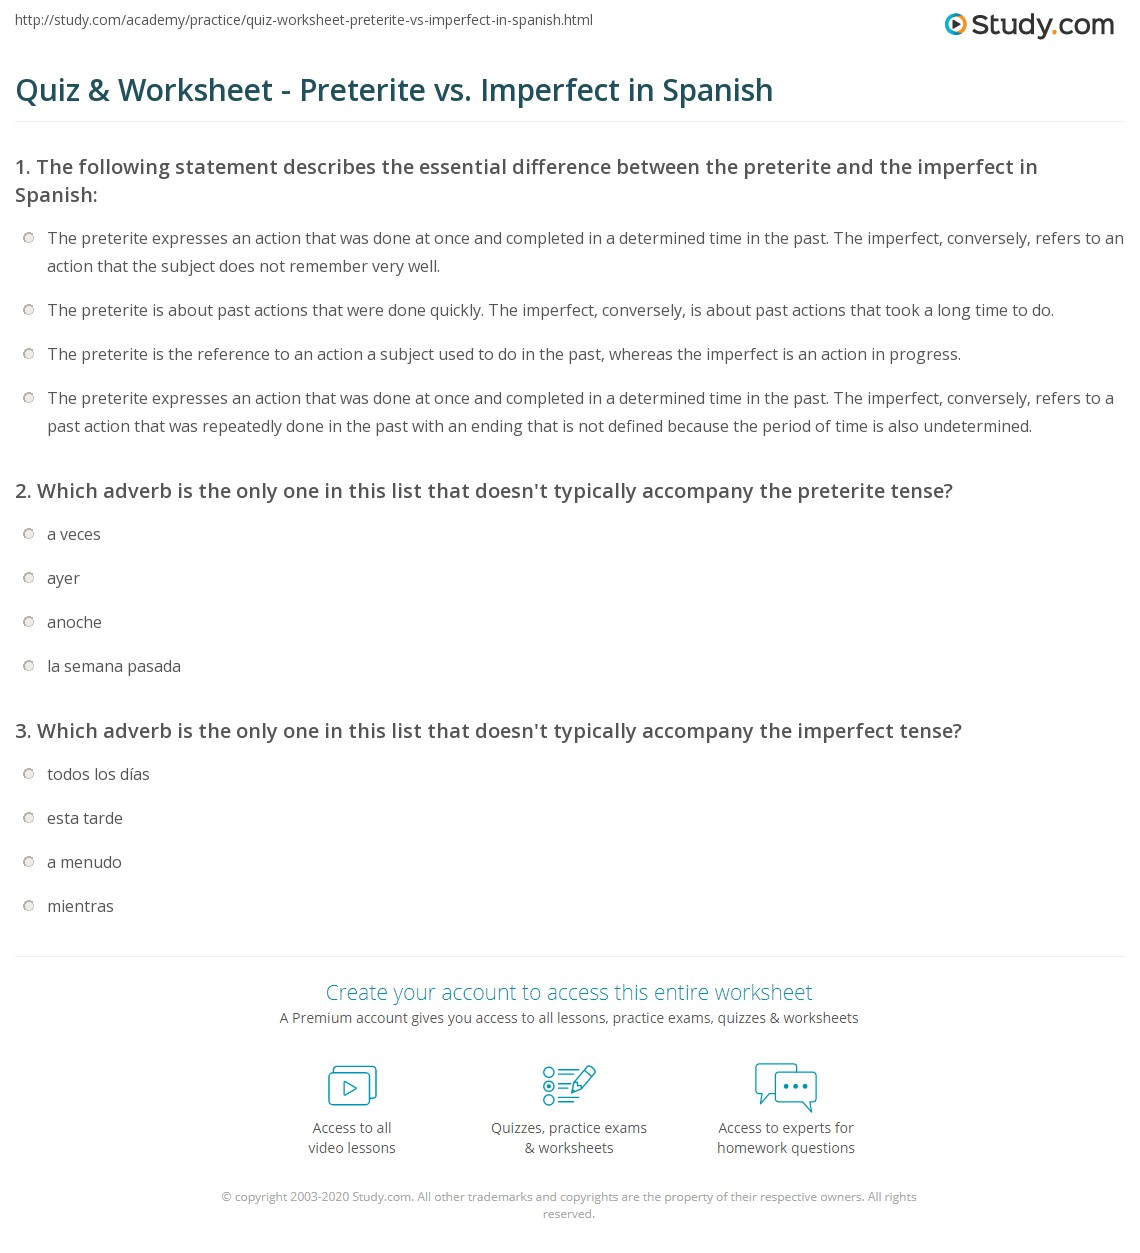 Quiz & Worksheet - Preterite vs. Imperfect in Spanish | Study.com